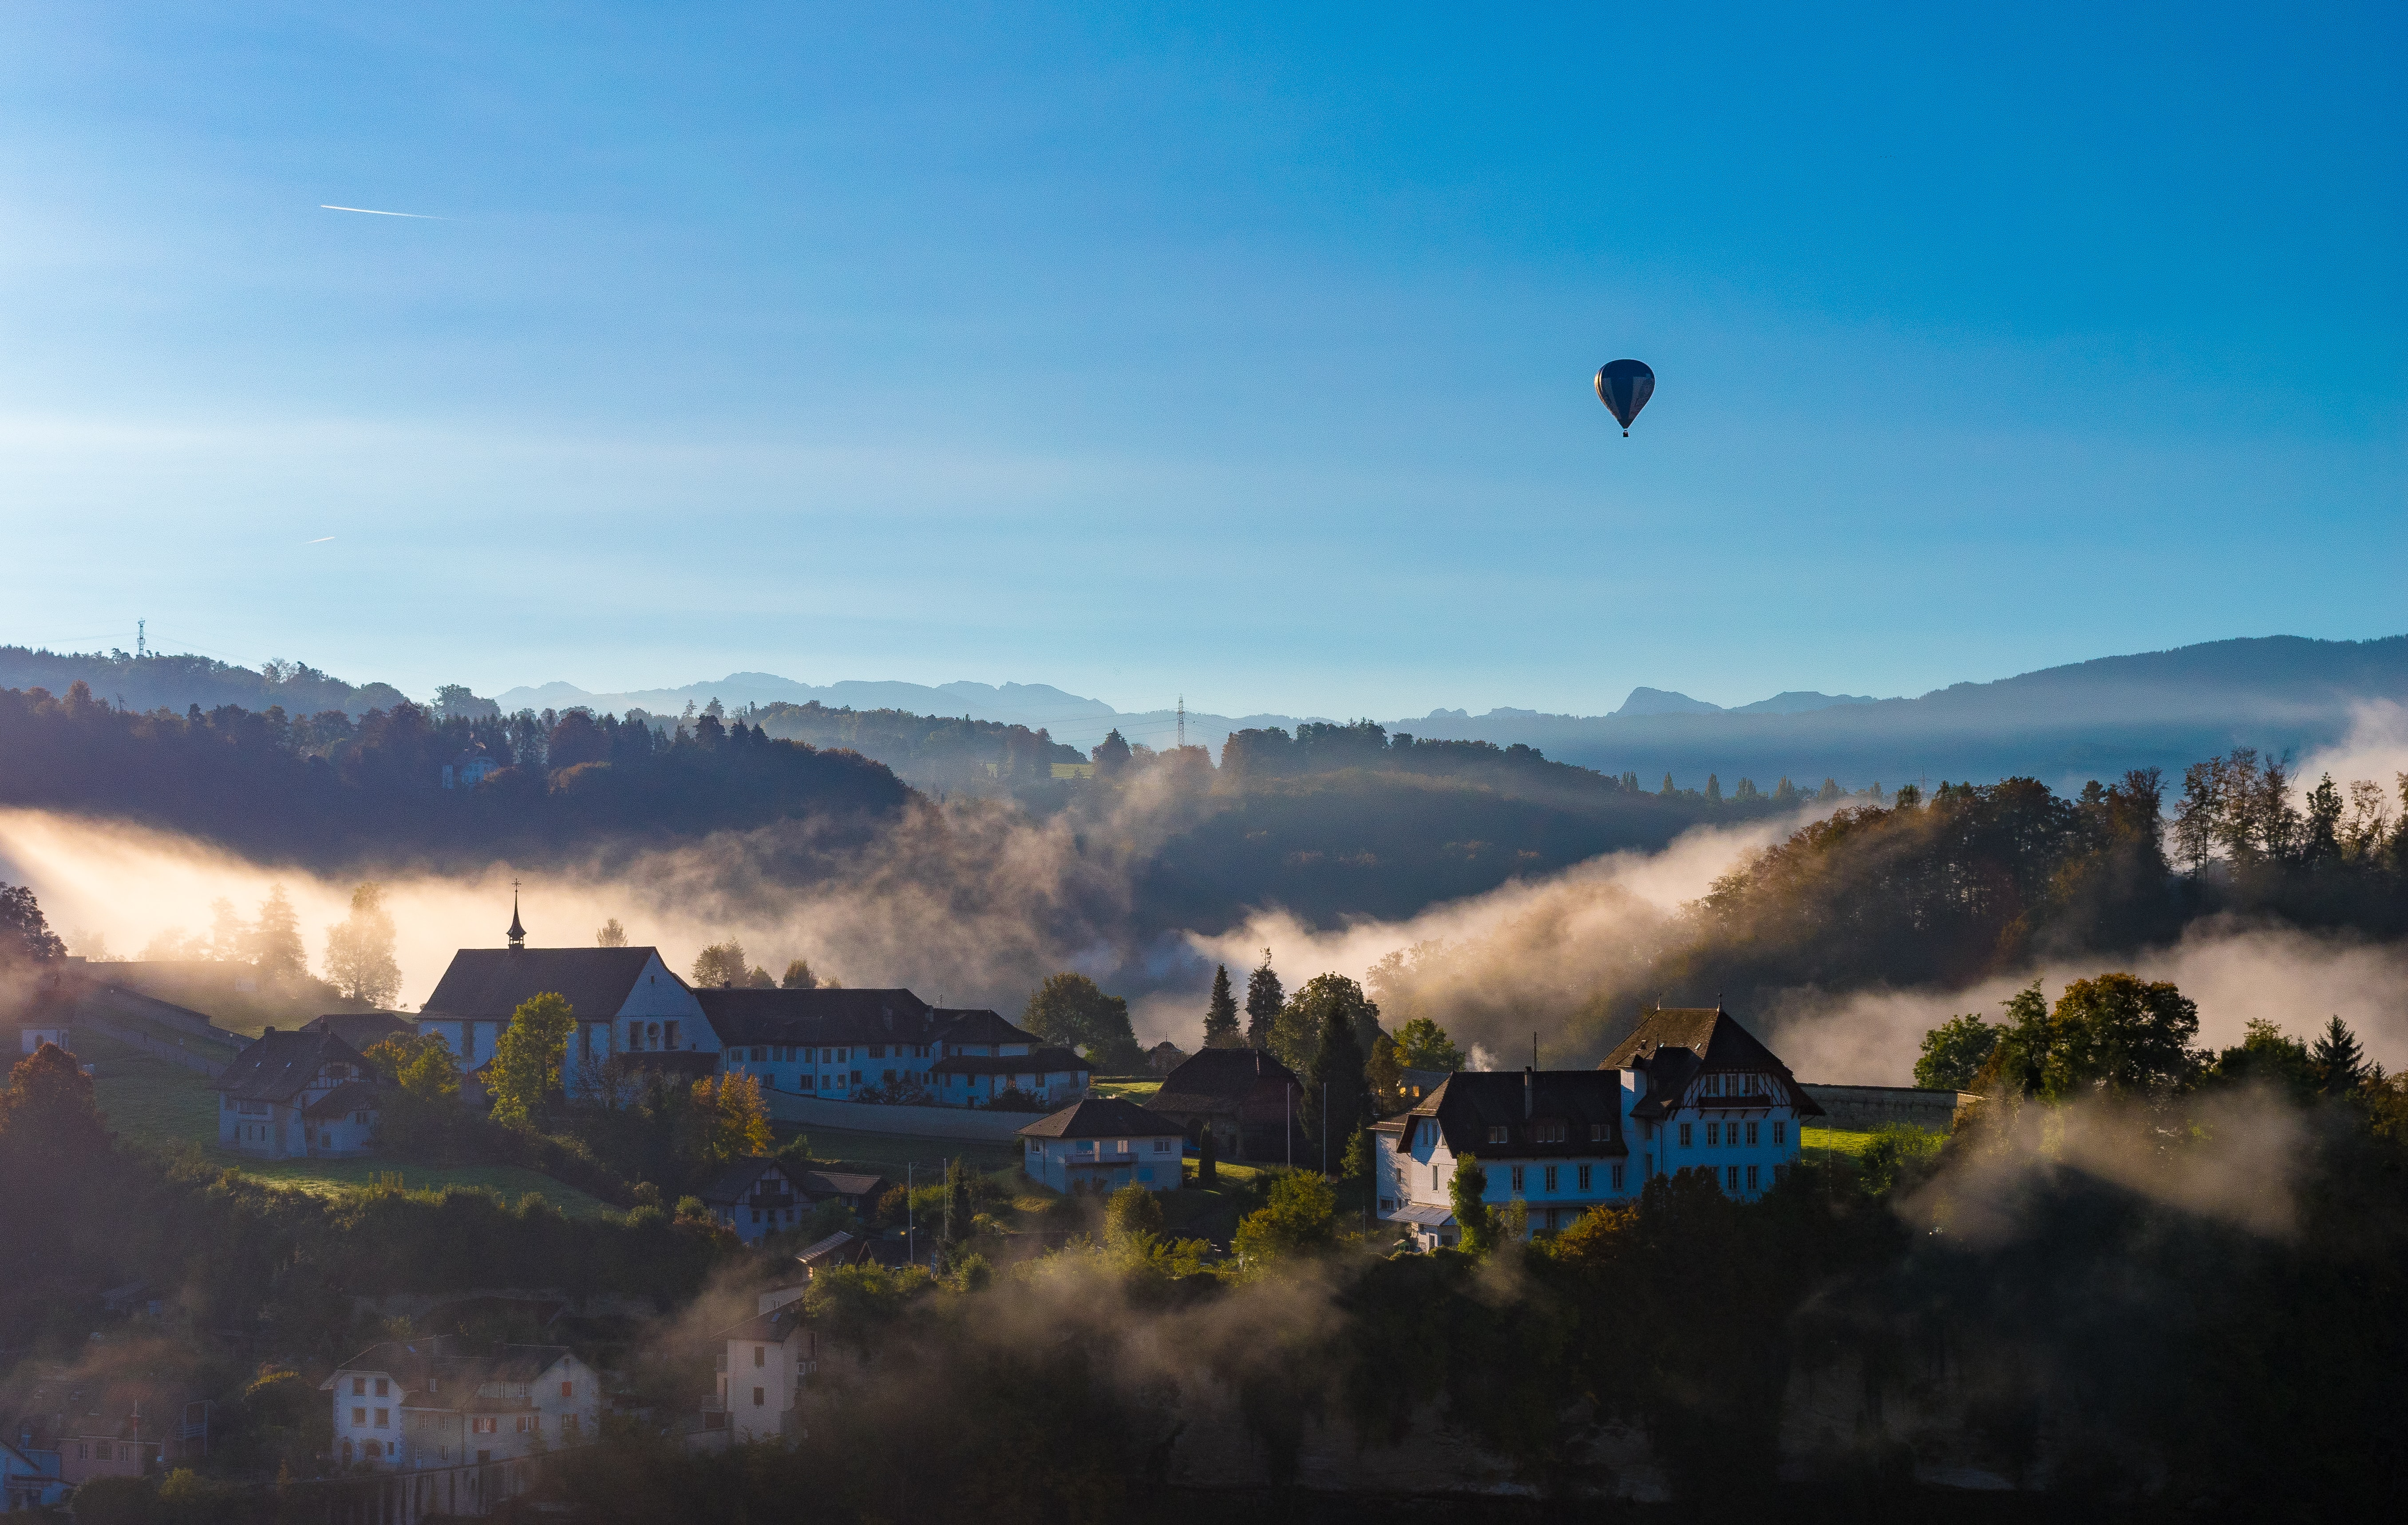 Hot air balloon flies over a quaint village in Fribourg on a foggy day